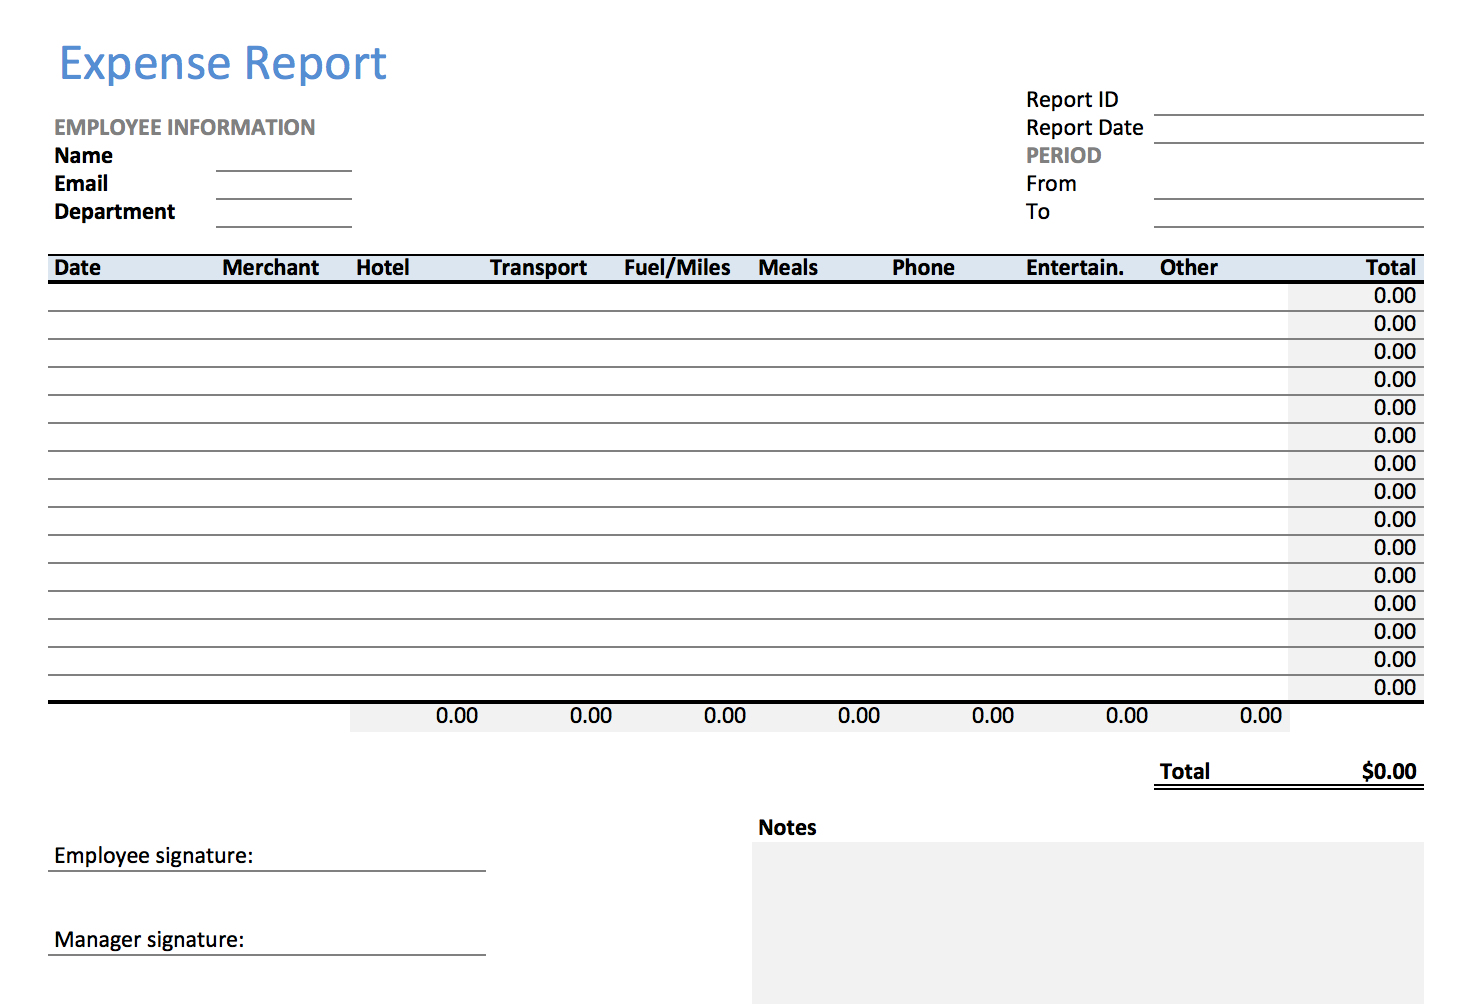 Excel Expense Report  Example Expense Report